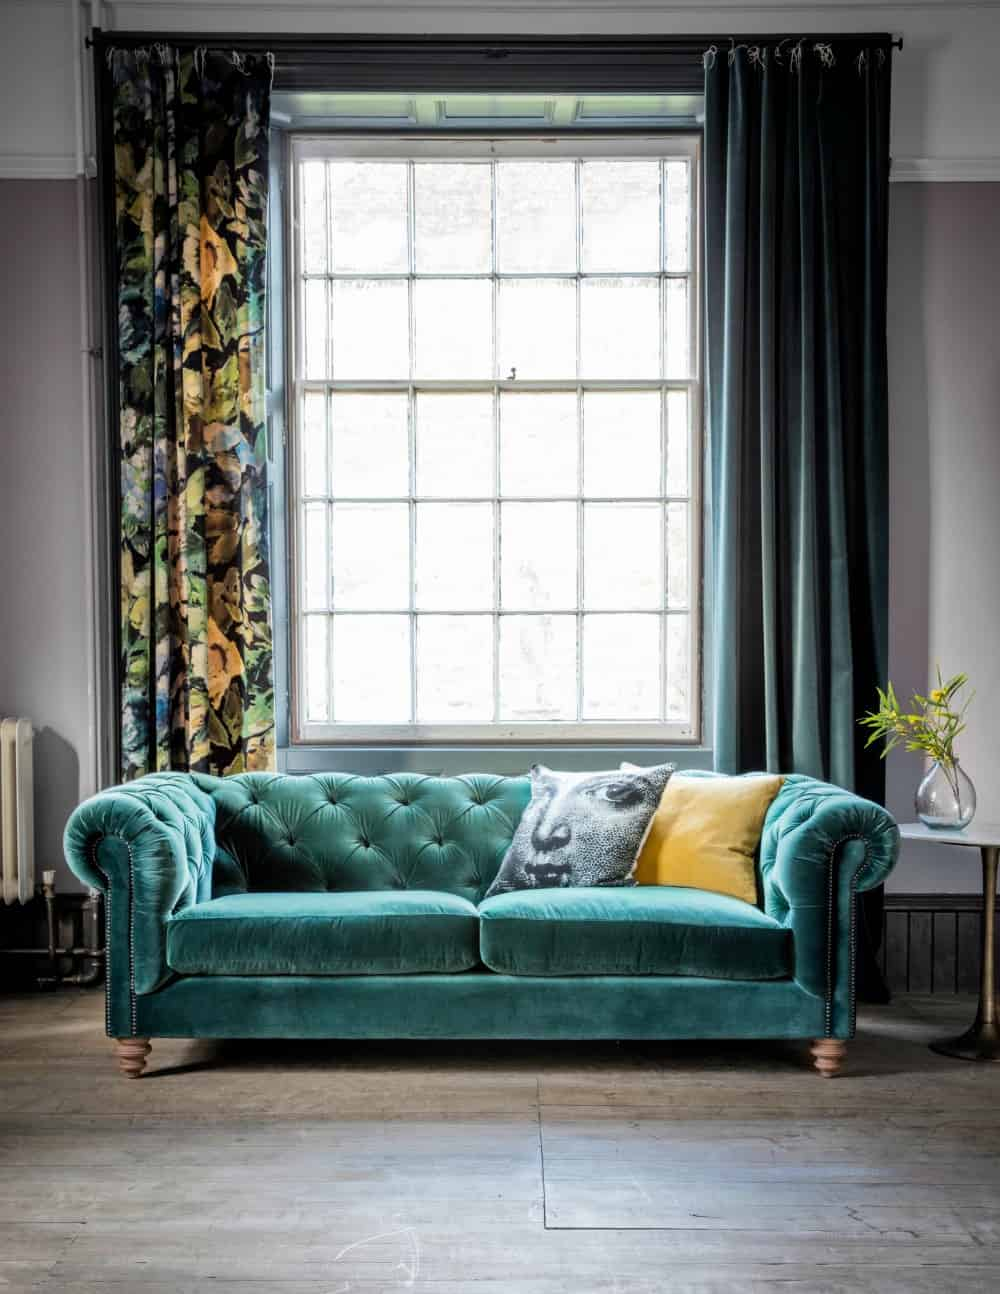 40 Velvet Sofas That Add A Bit Of Sex Appeal To The House